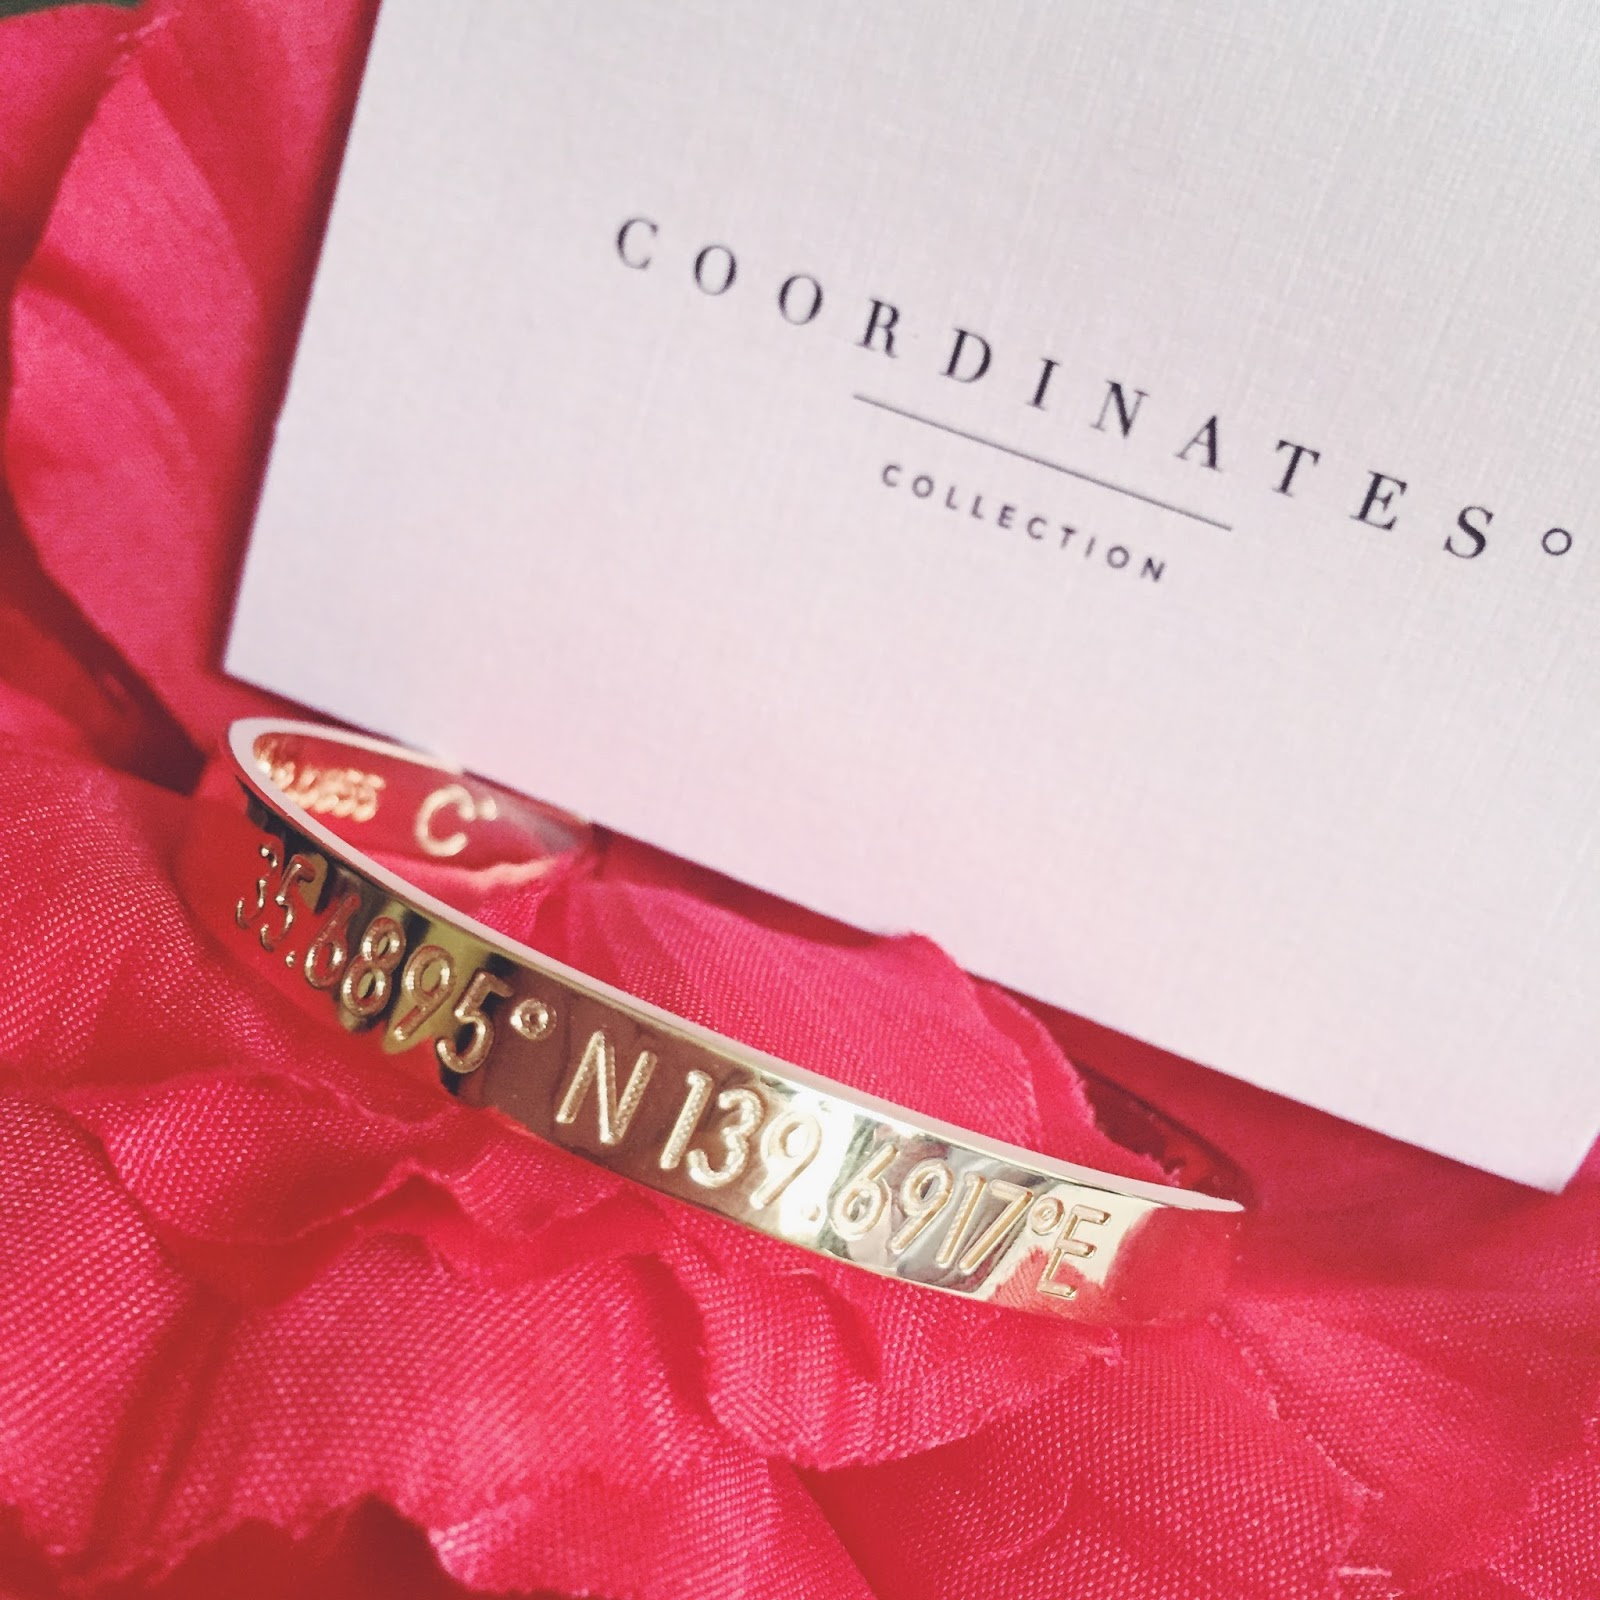 Besides That You Are Also Able To Engrave Your Own Name And A Special Date At The Back Of Bracelet